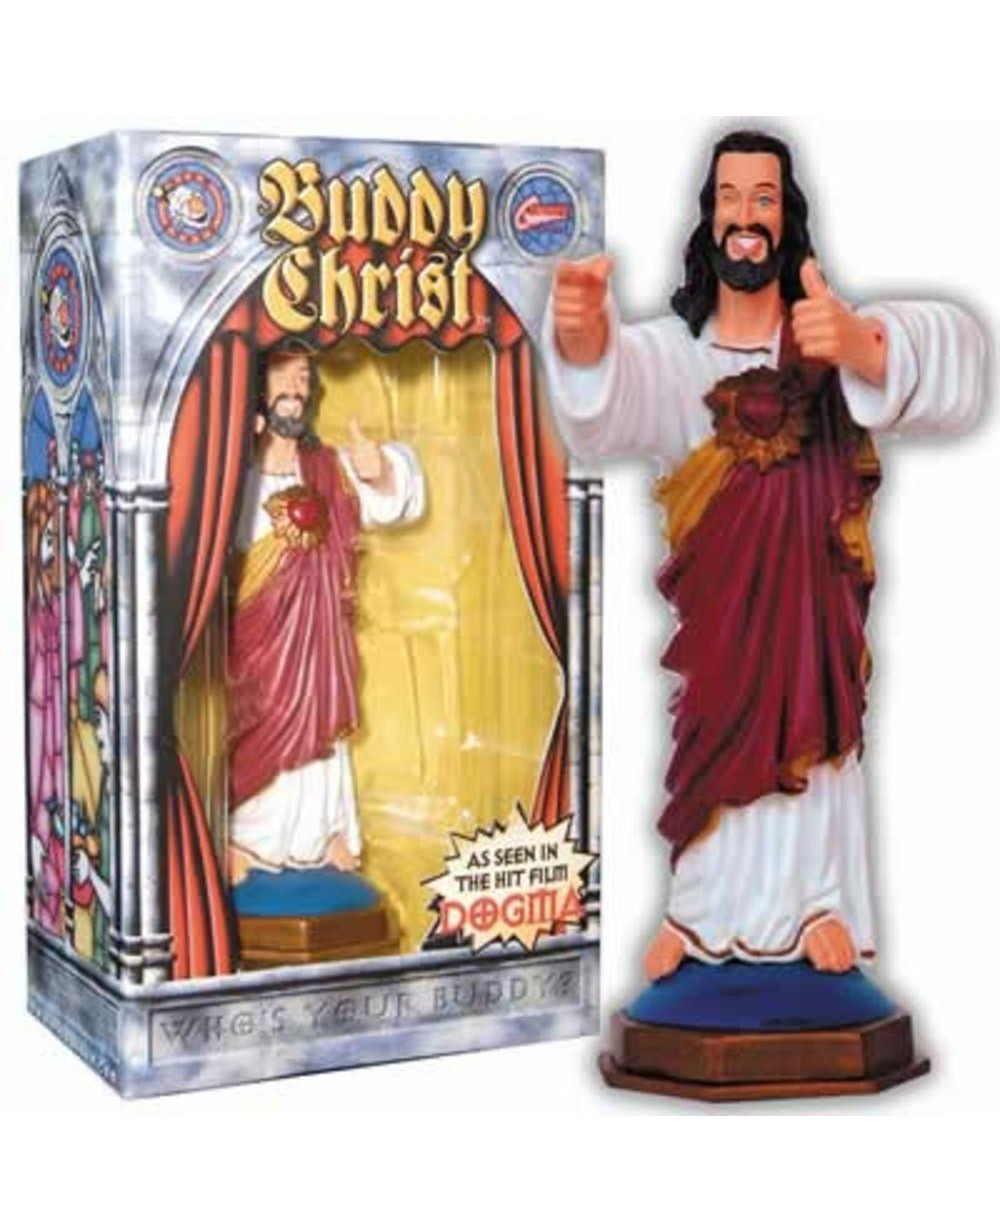 The changing face of Jesus. Good idea or bad? Buddy-christ-dashboard-figure